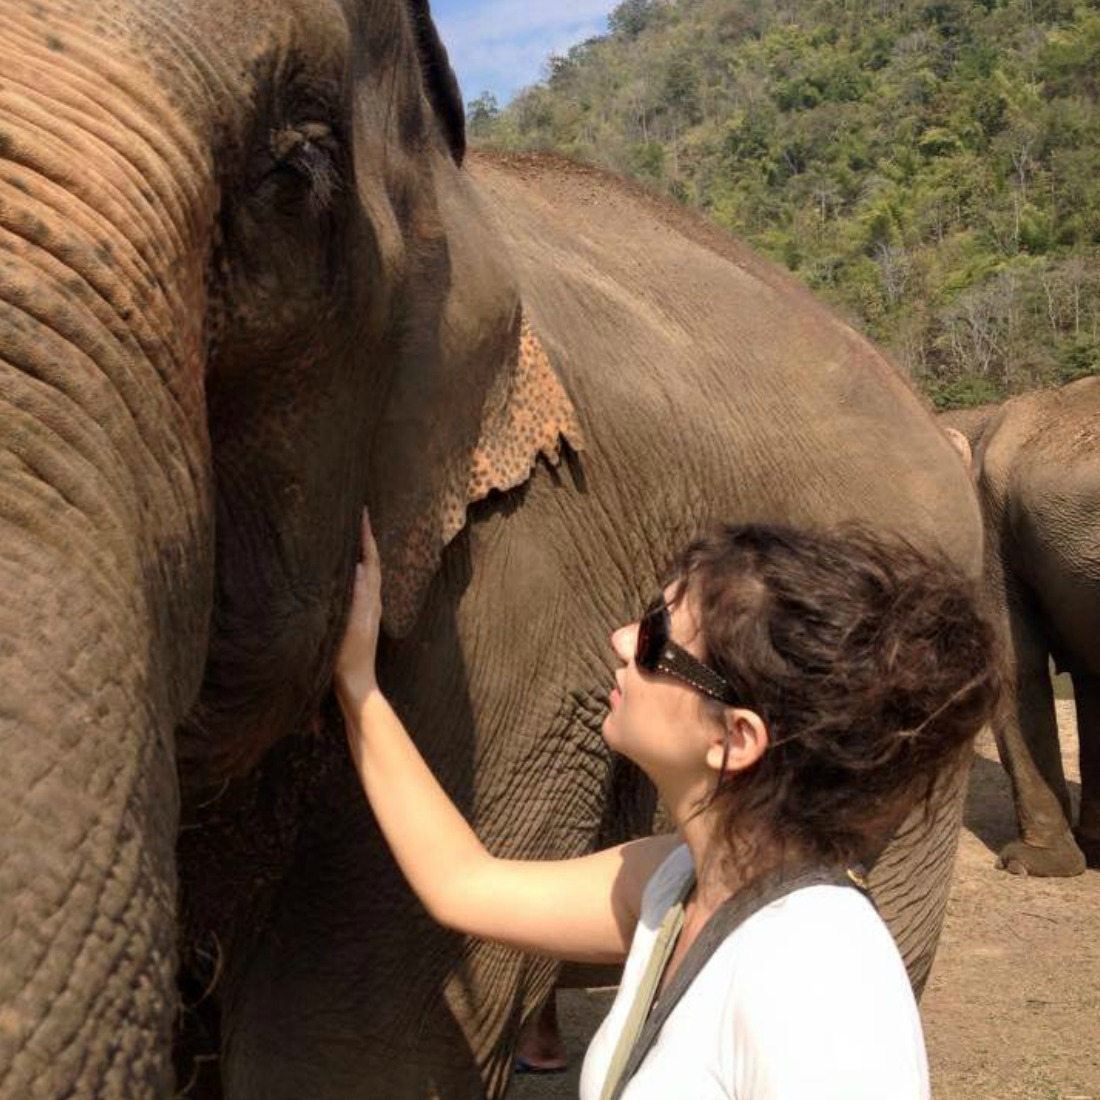 Elephant Nature Park Chiang Mai Thailand - Volunteering Sustainable Travel